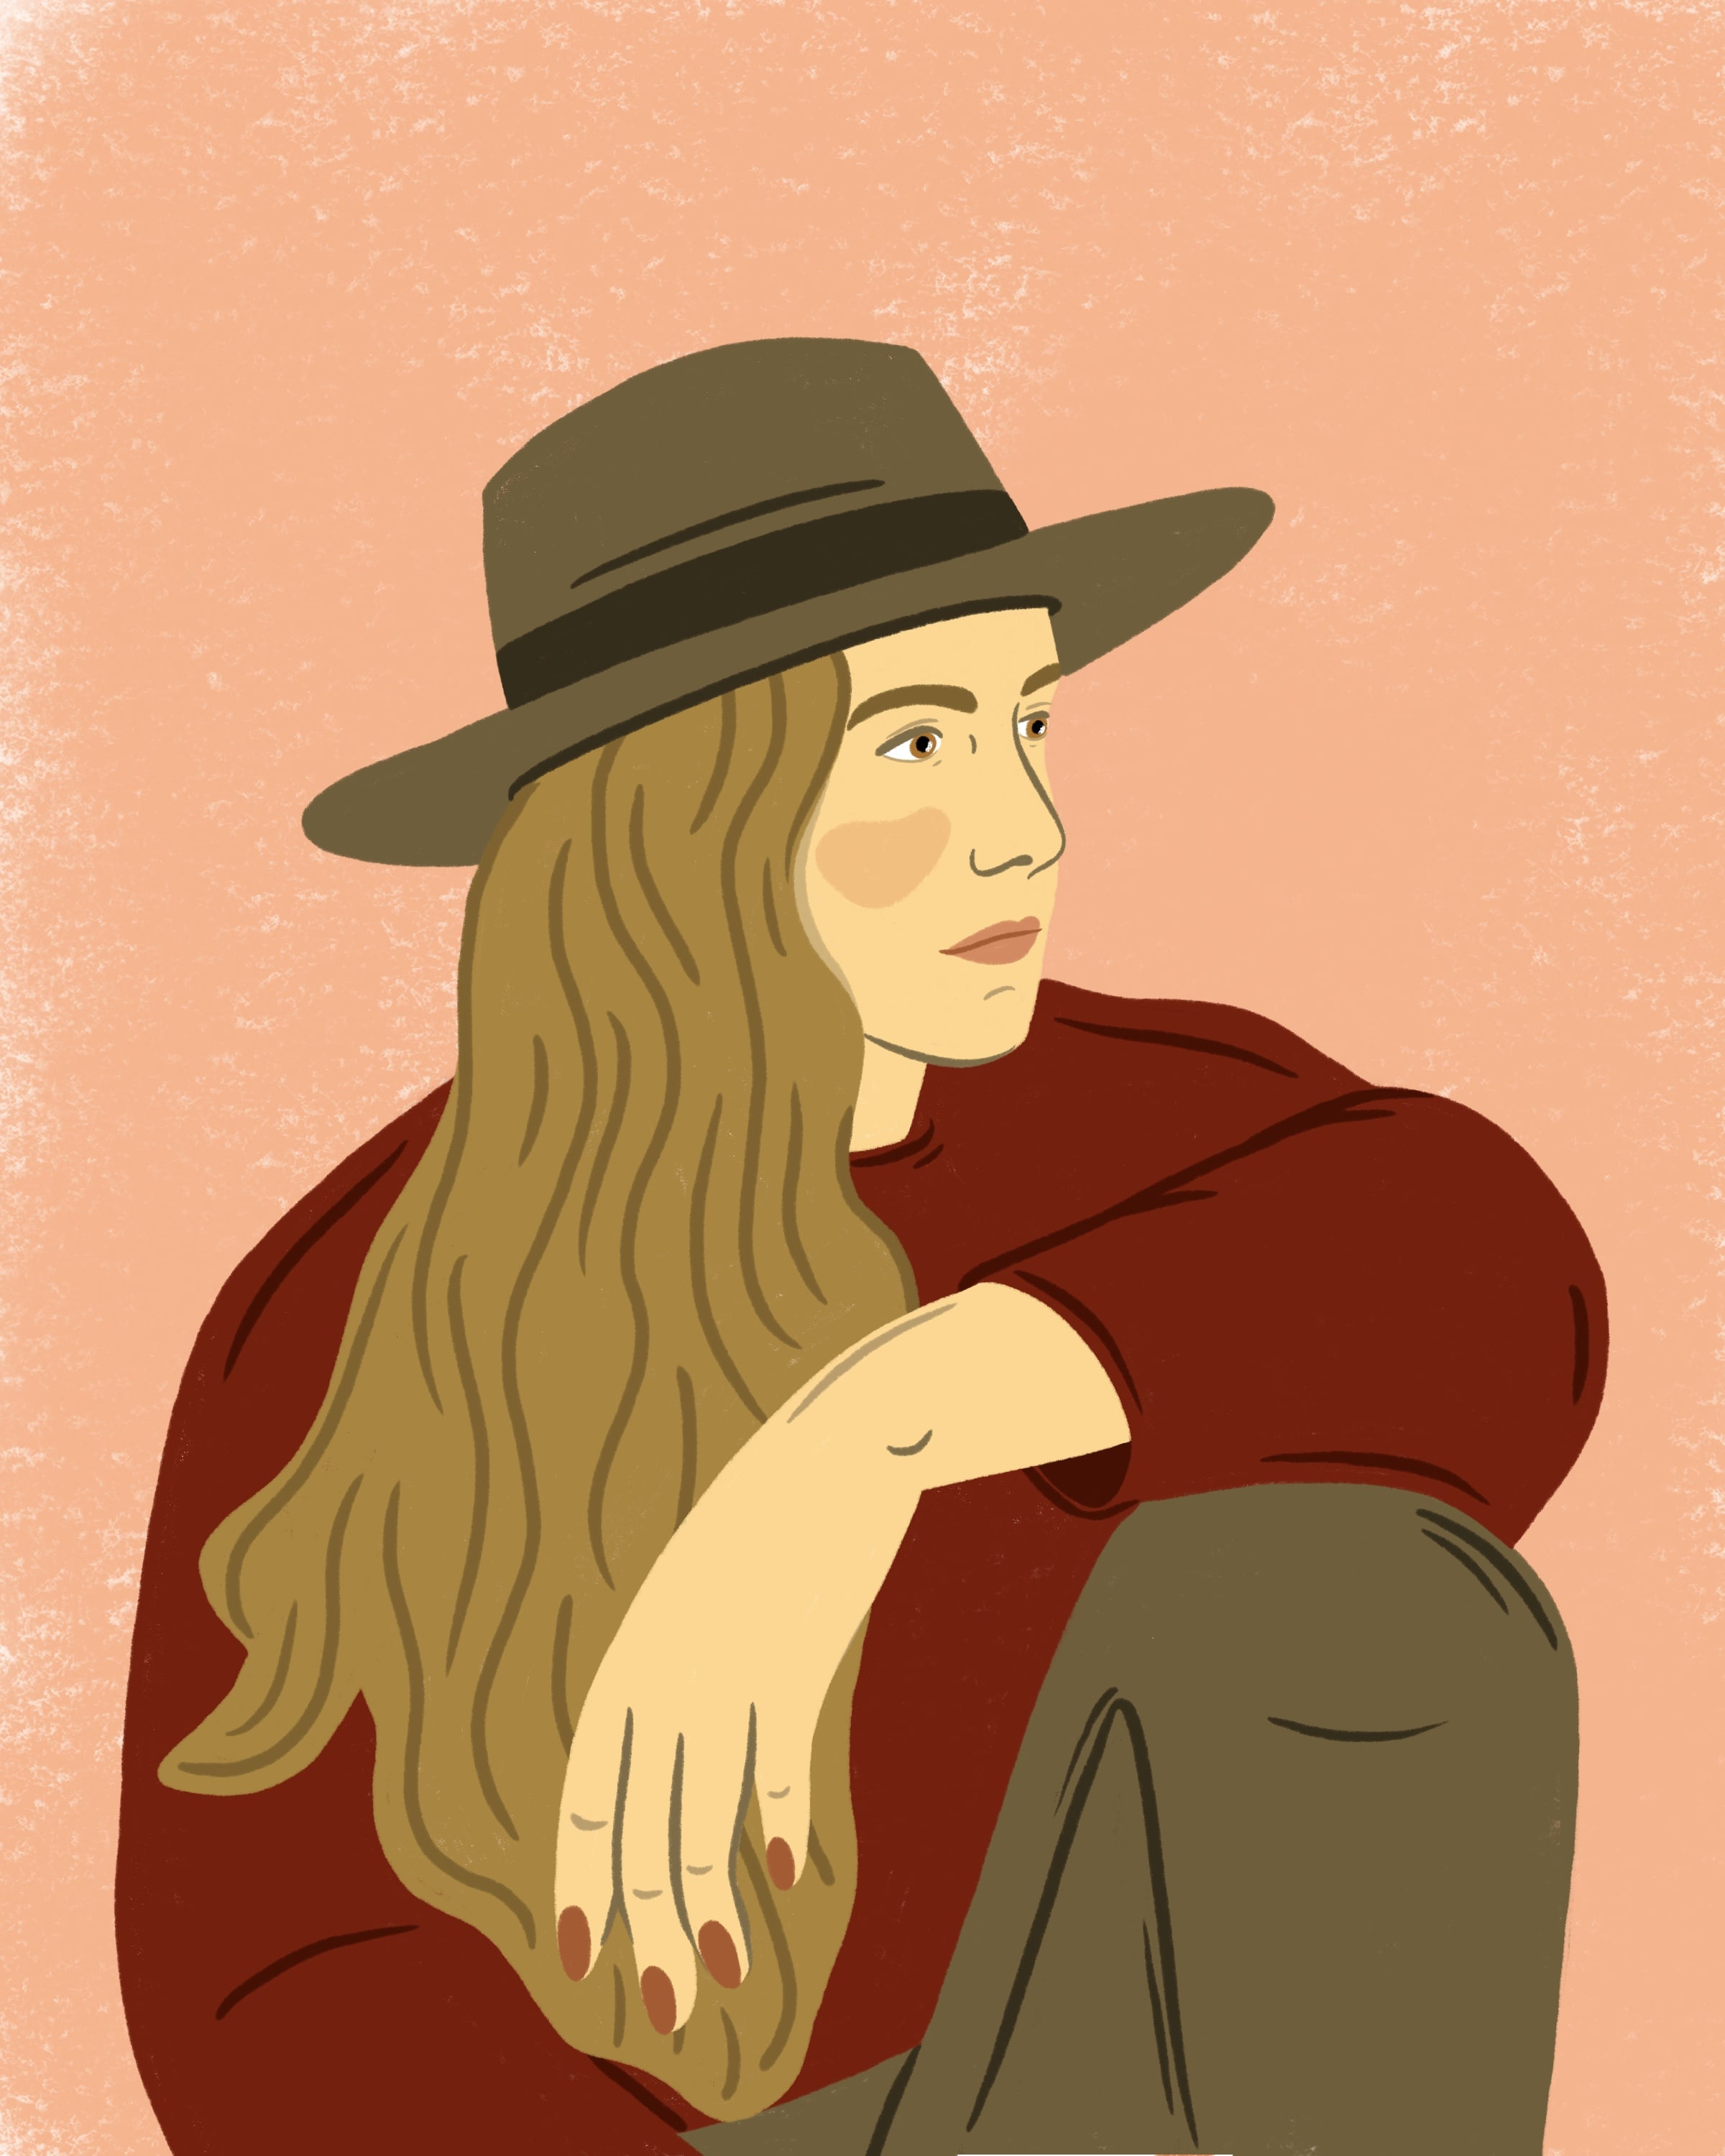 Illustration of a girl looking to her left side wearing a hat.